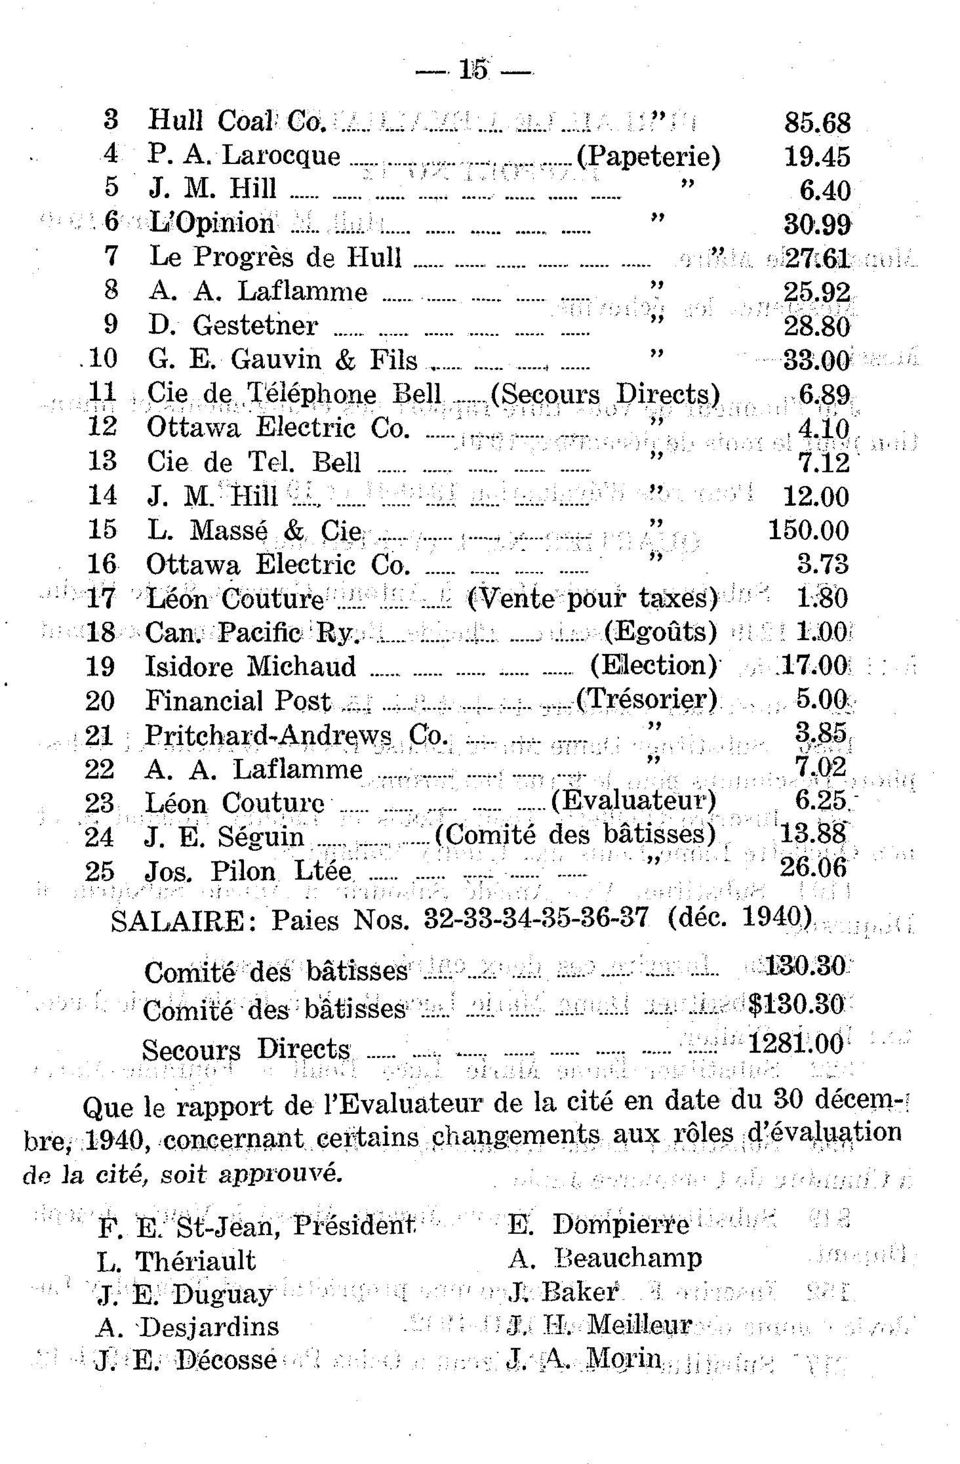 ".. (Vente pour taxes) ' 1.80 Can. Pacifie 'Ry....!... (Egoûts 19 Isidore Michaud... (Eilection 20 Financial Post... (Trésorier) 5.00. 21 Pritchar d-andrews Co.... "" 3.85 22 A. A. Laflamme..,....:."